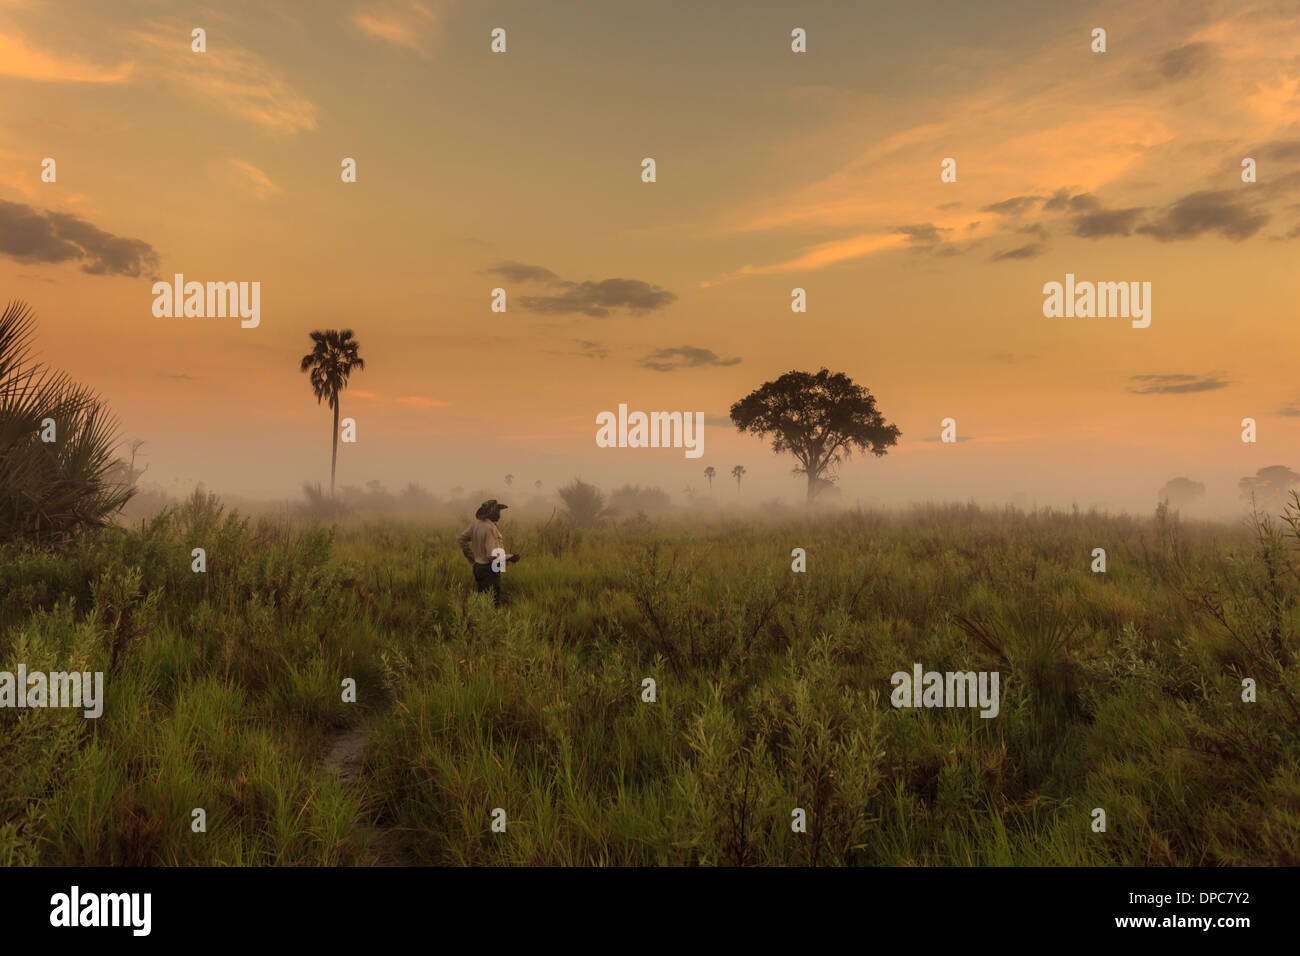 Safari guide studies wetlands for signs of wildlife to show tourists, Botswana, Africa as sunrises and mist burns off - Stock Image